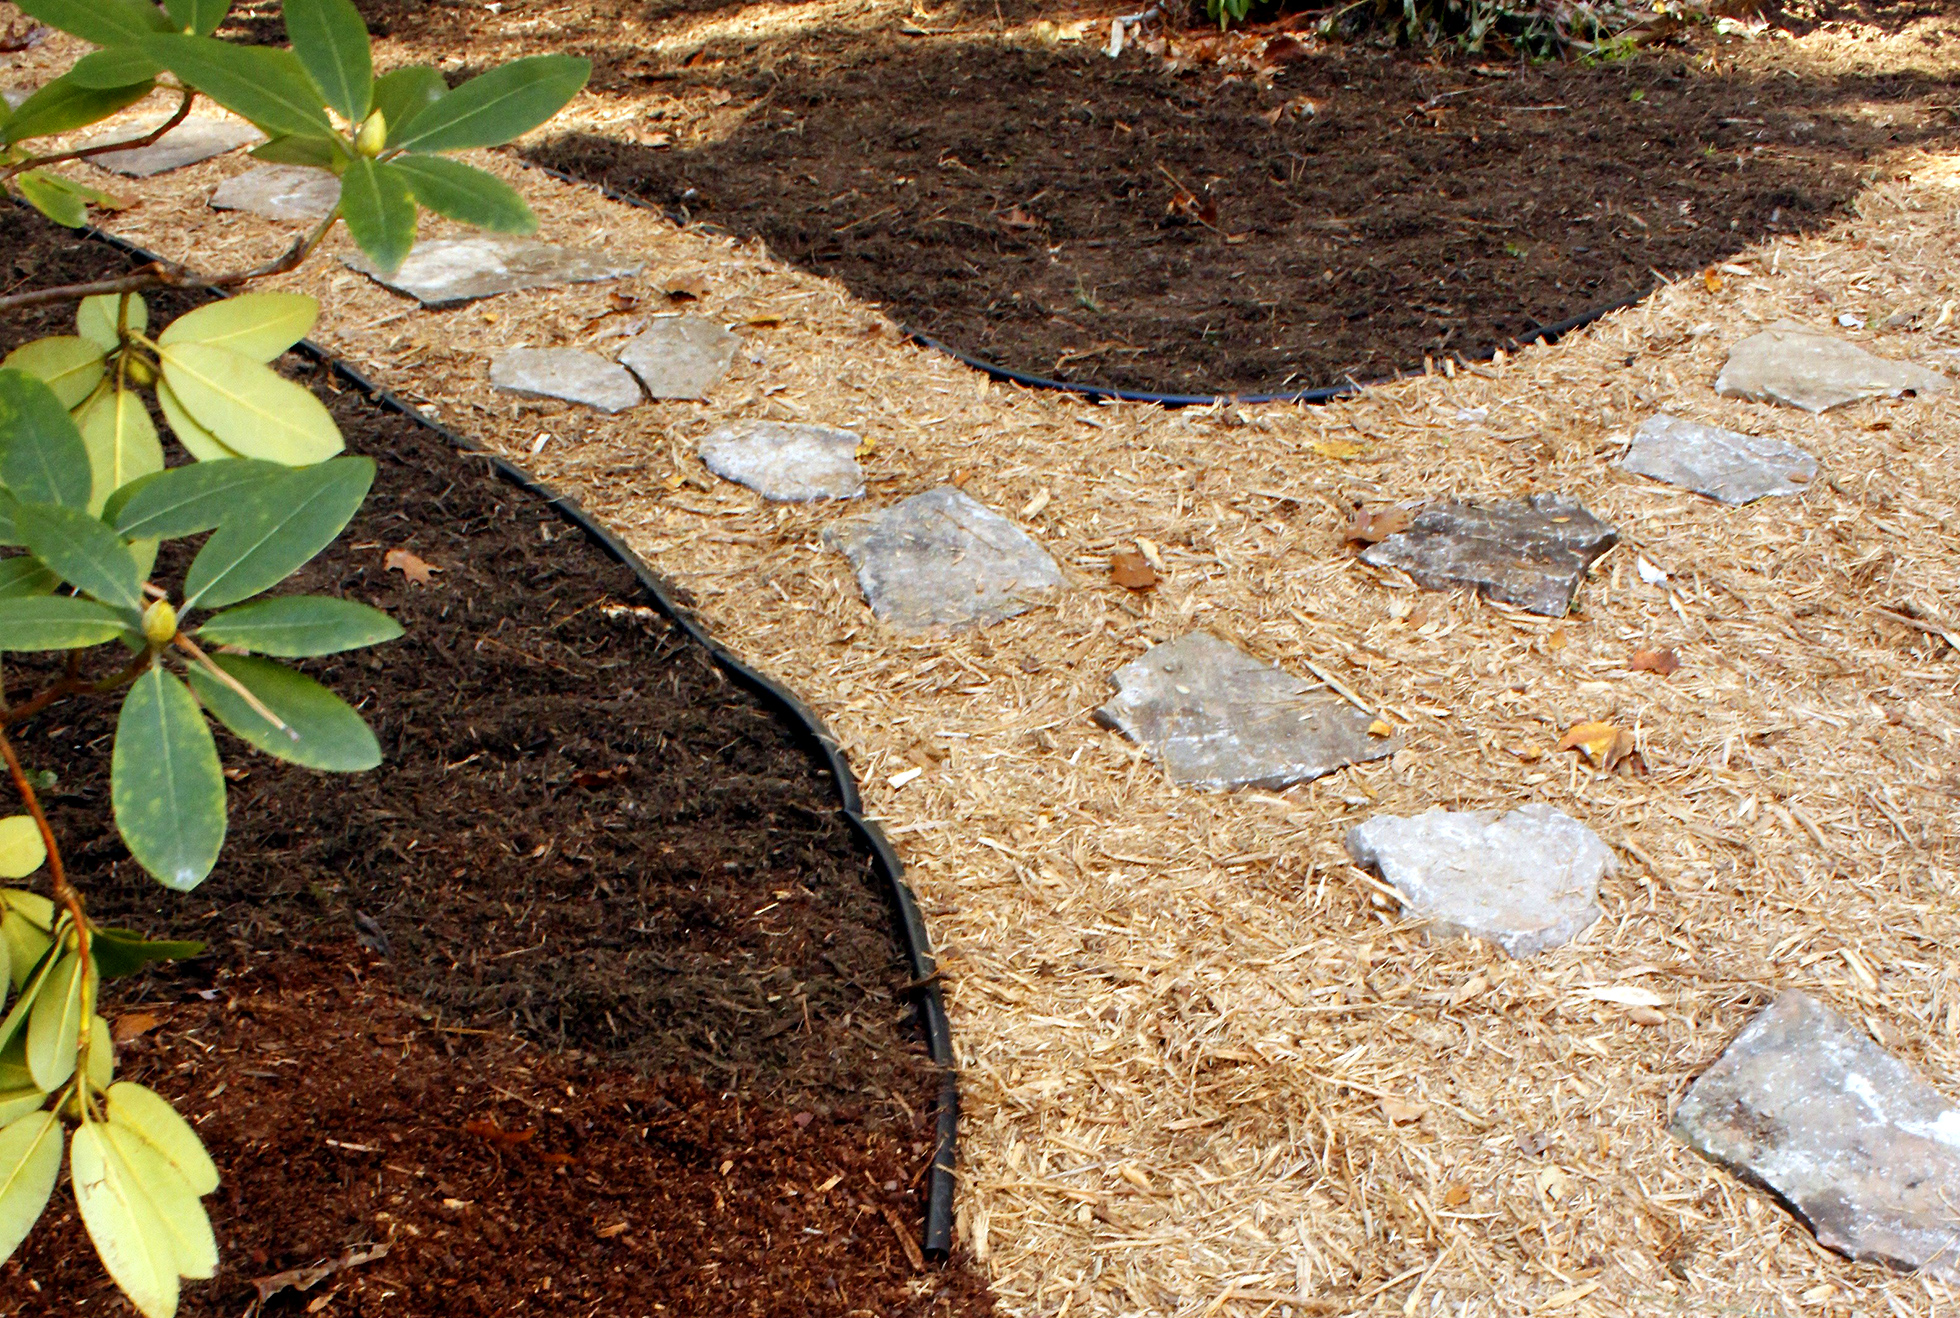 A bed of light and dark mulch with a stone path through it